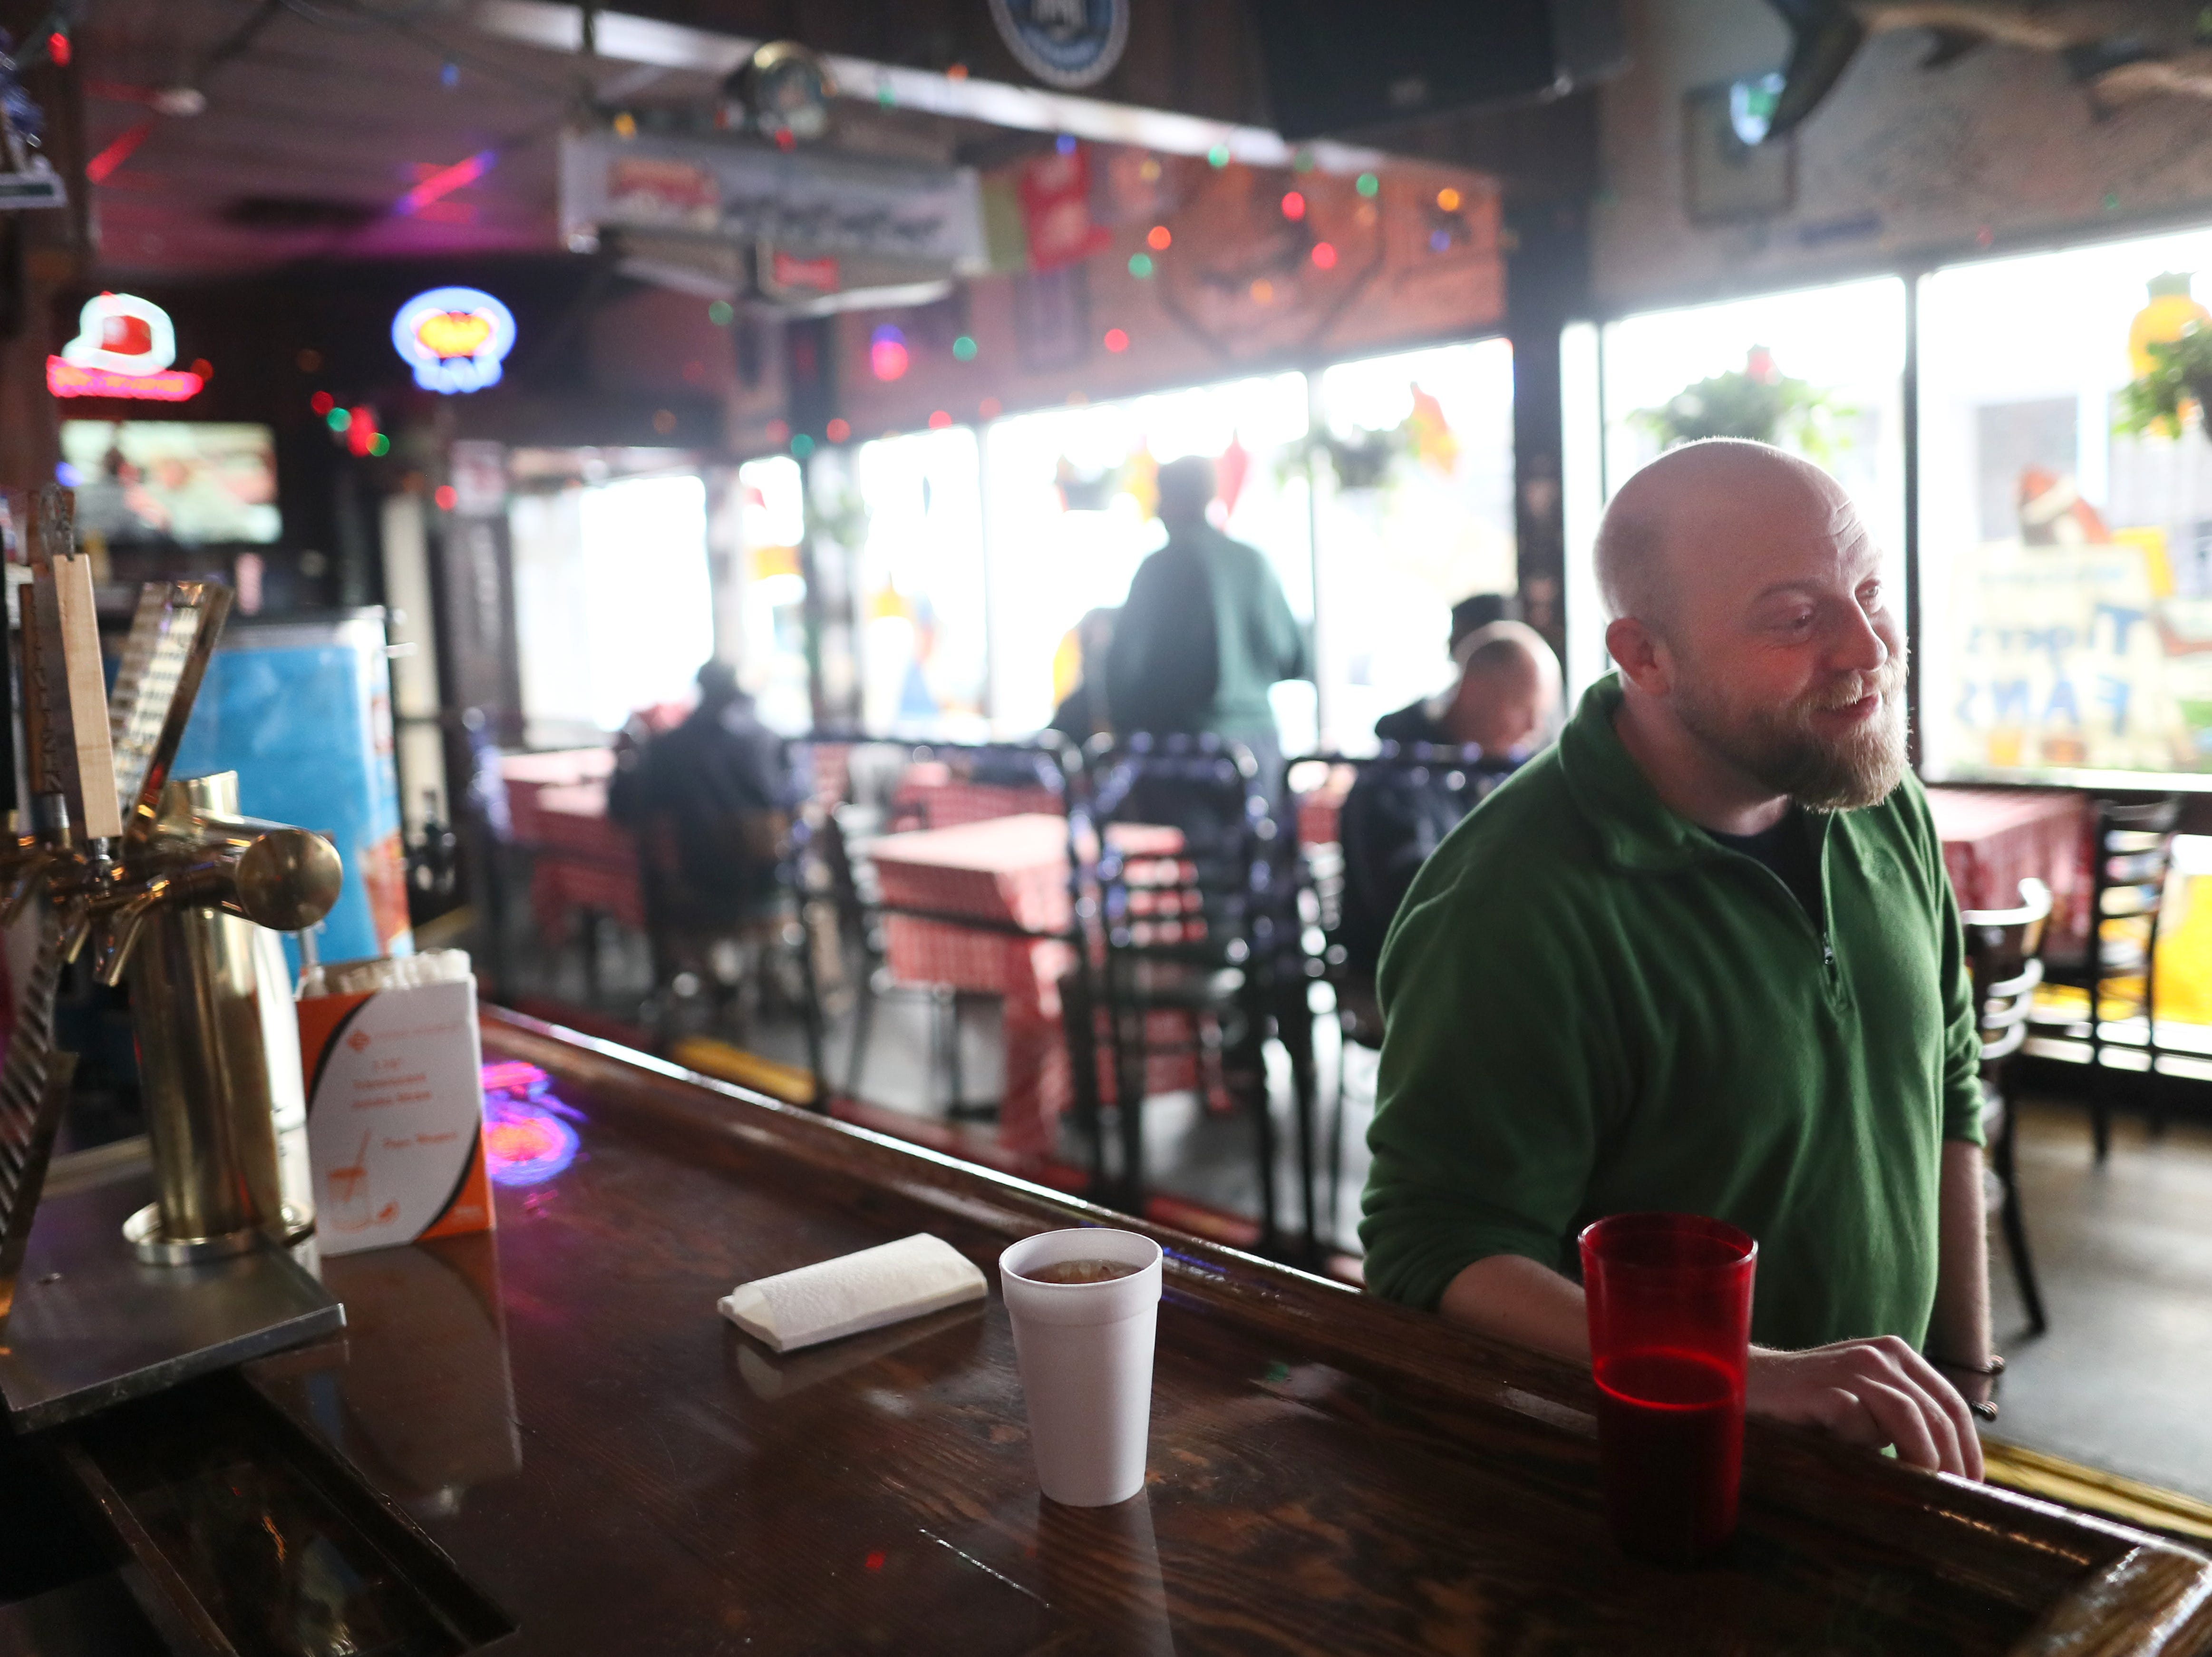 Assistant Manager J.P. Townsend opens up Huey's downtown restaurant on Christmas Day to serve free meals and hand out warm clothing Tuesday, Dec. 25, 2018.